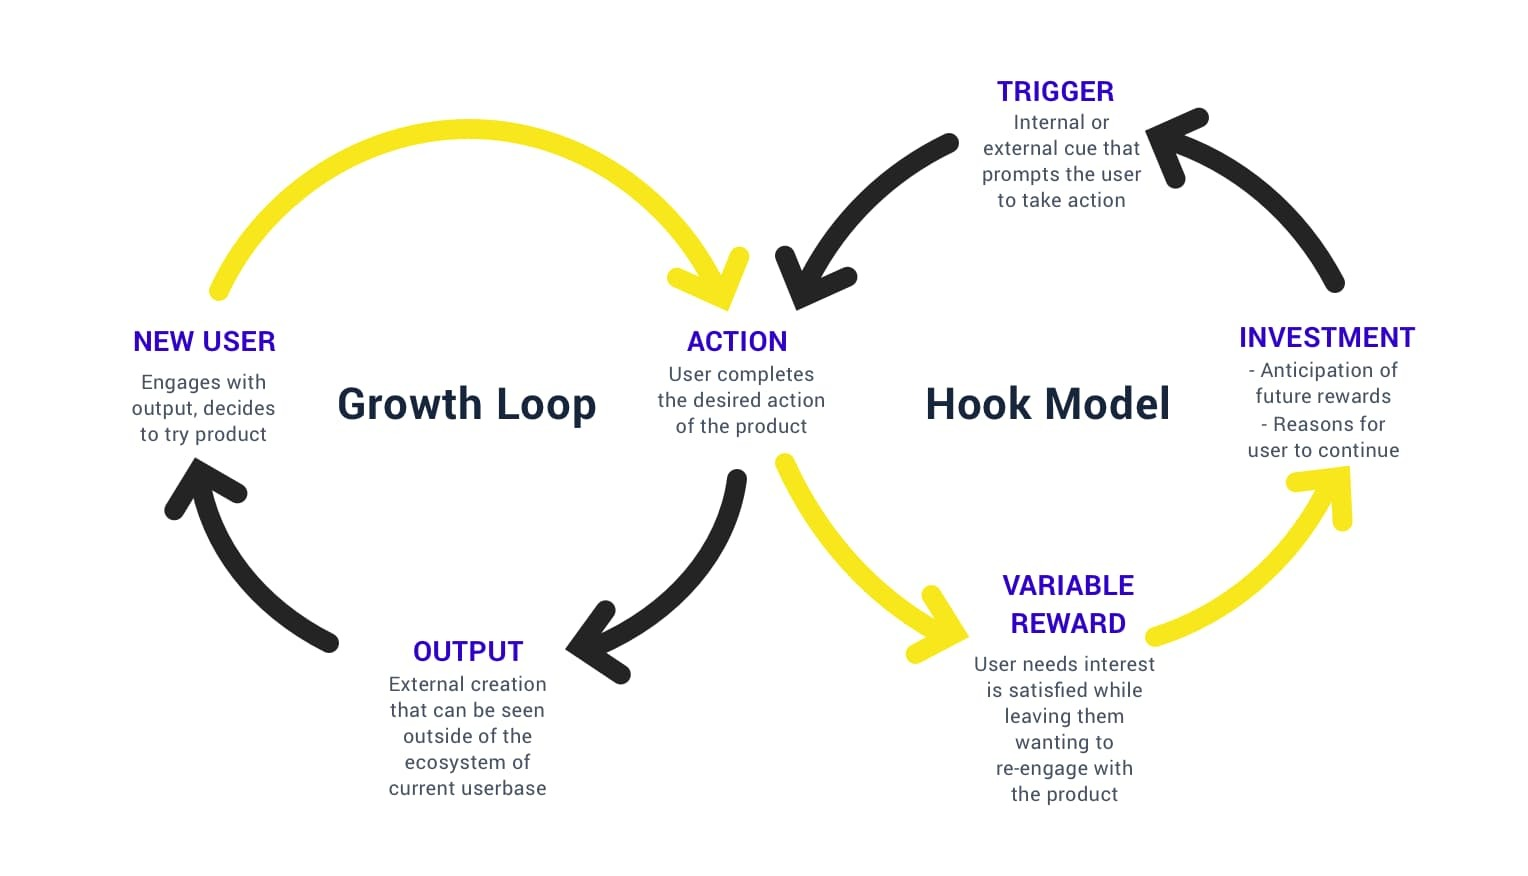 Product acquisition growth loop